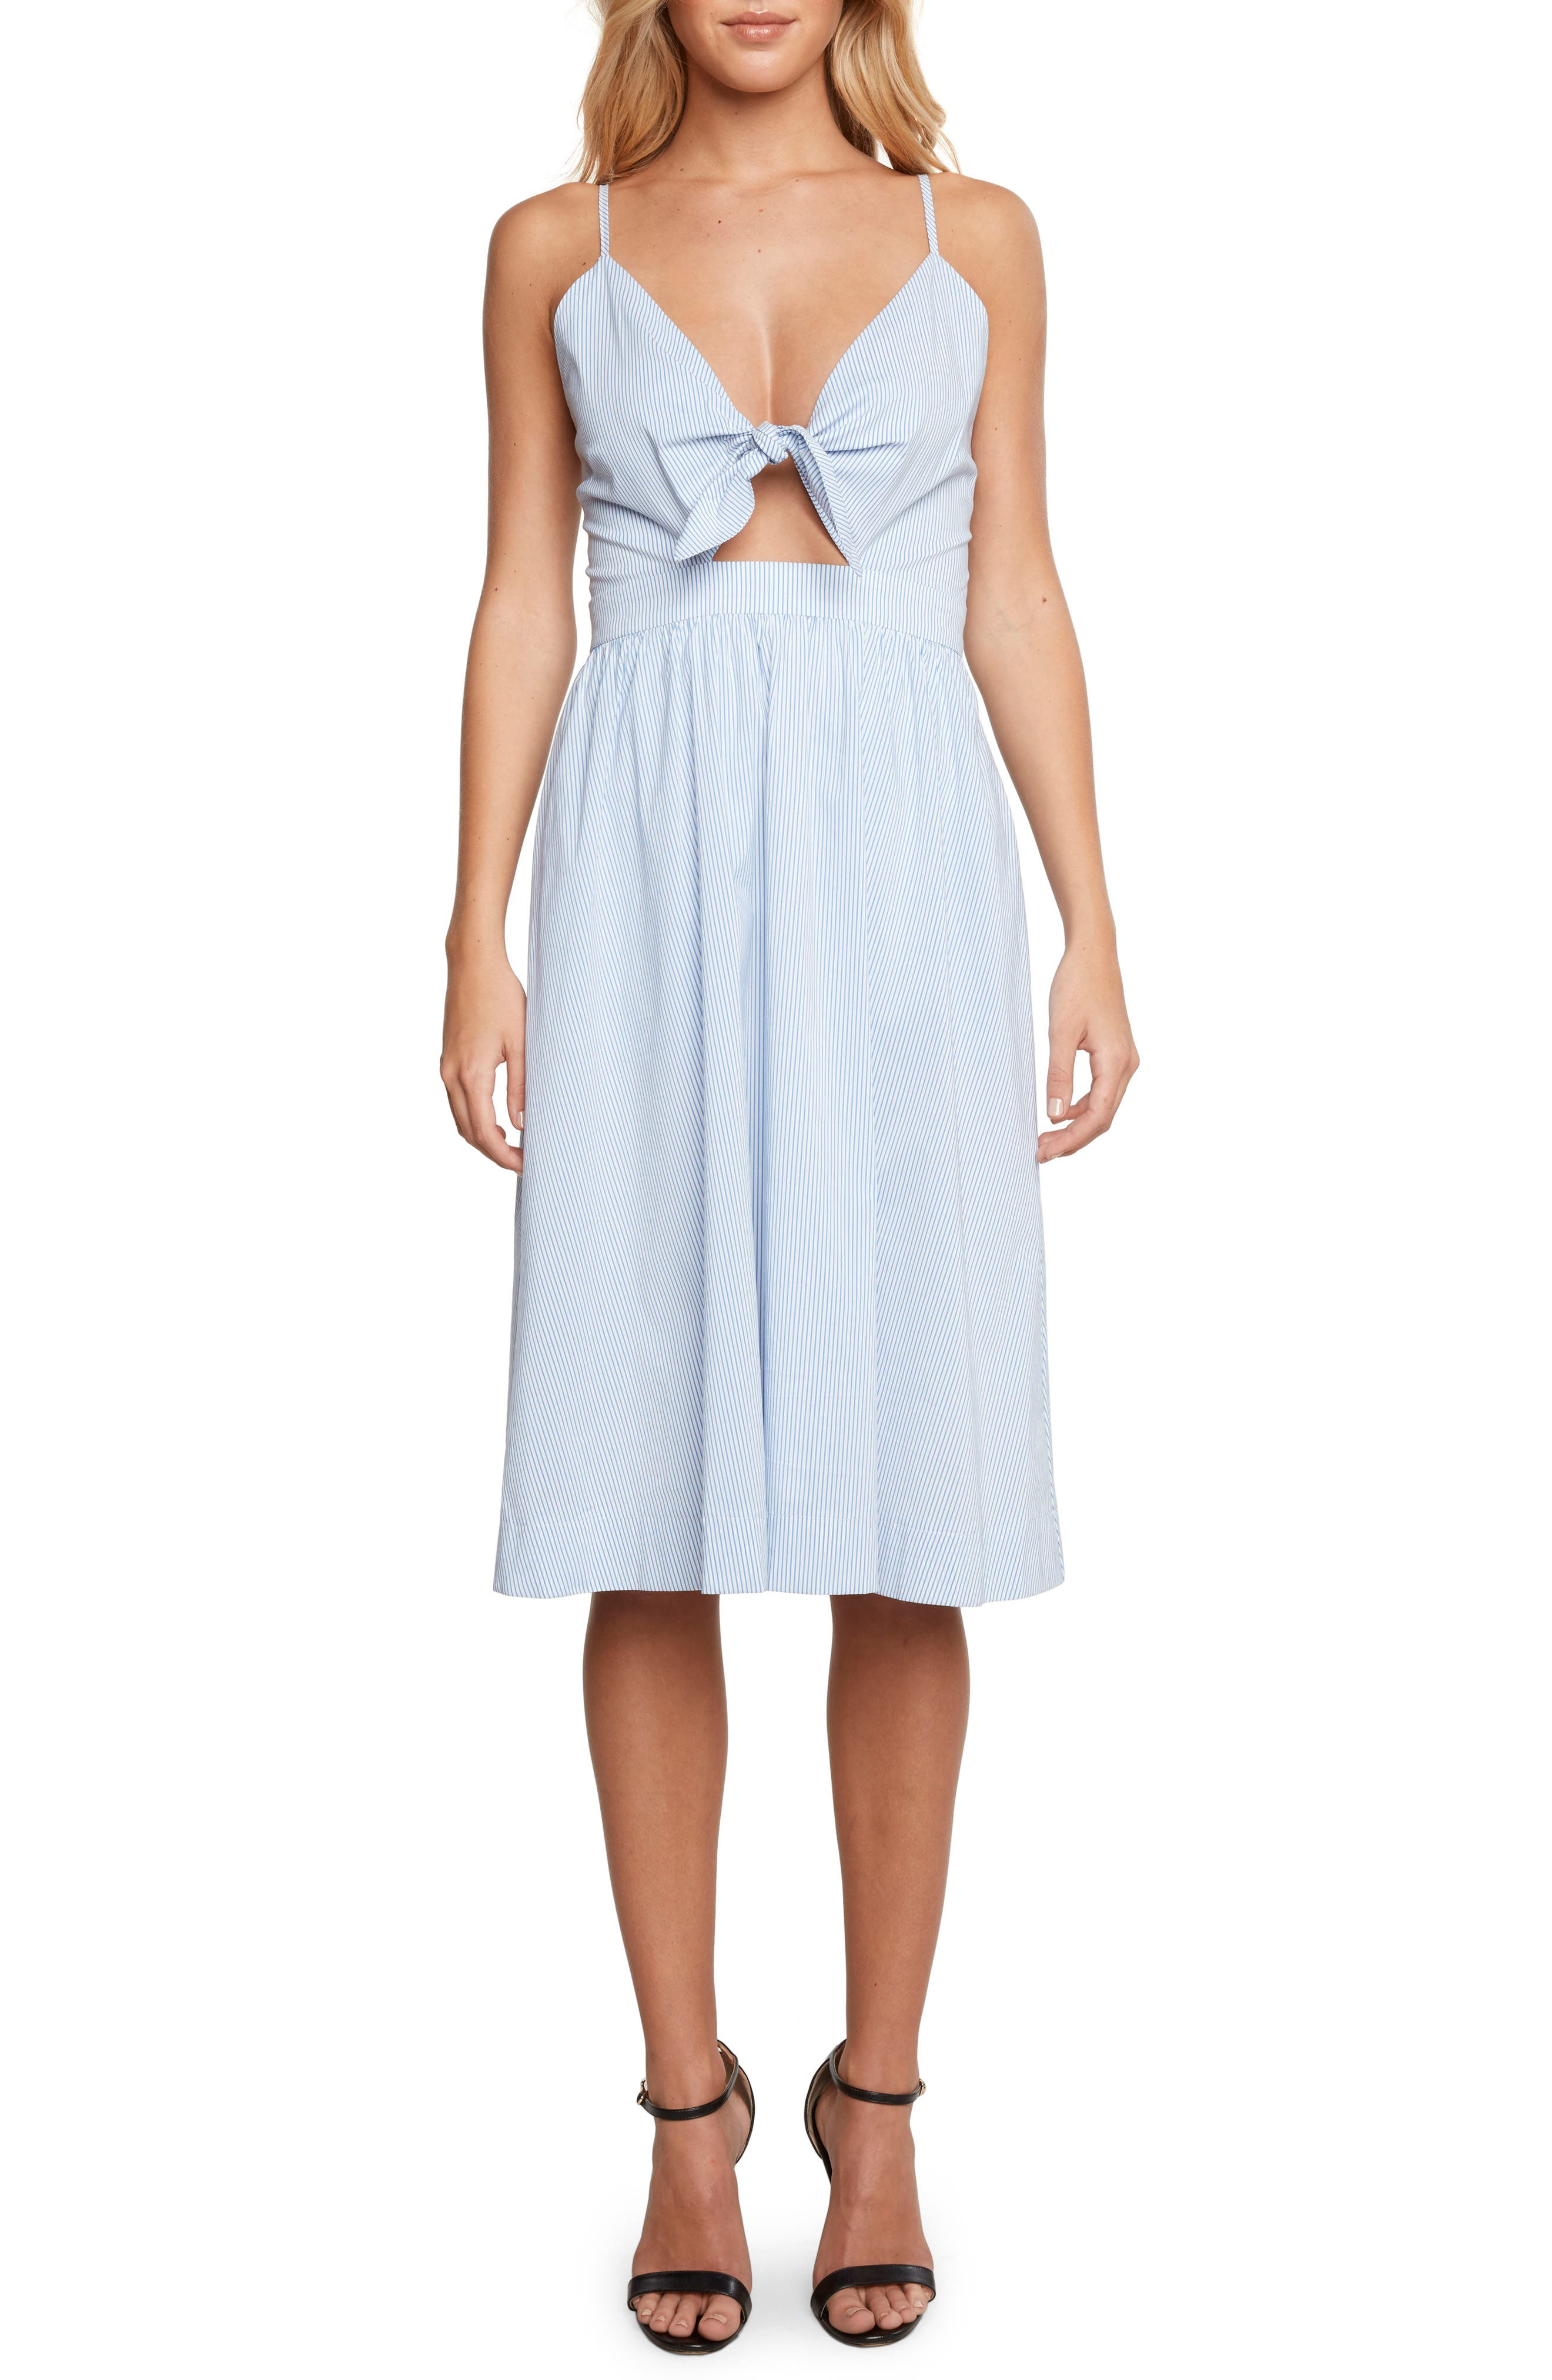 WILLOW & CLAY Brenda Tie Front Dress, Main, color, 453